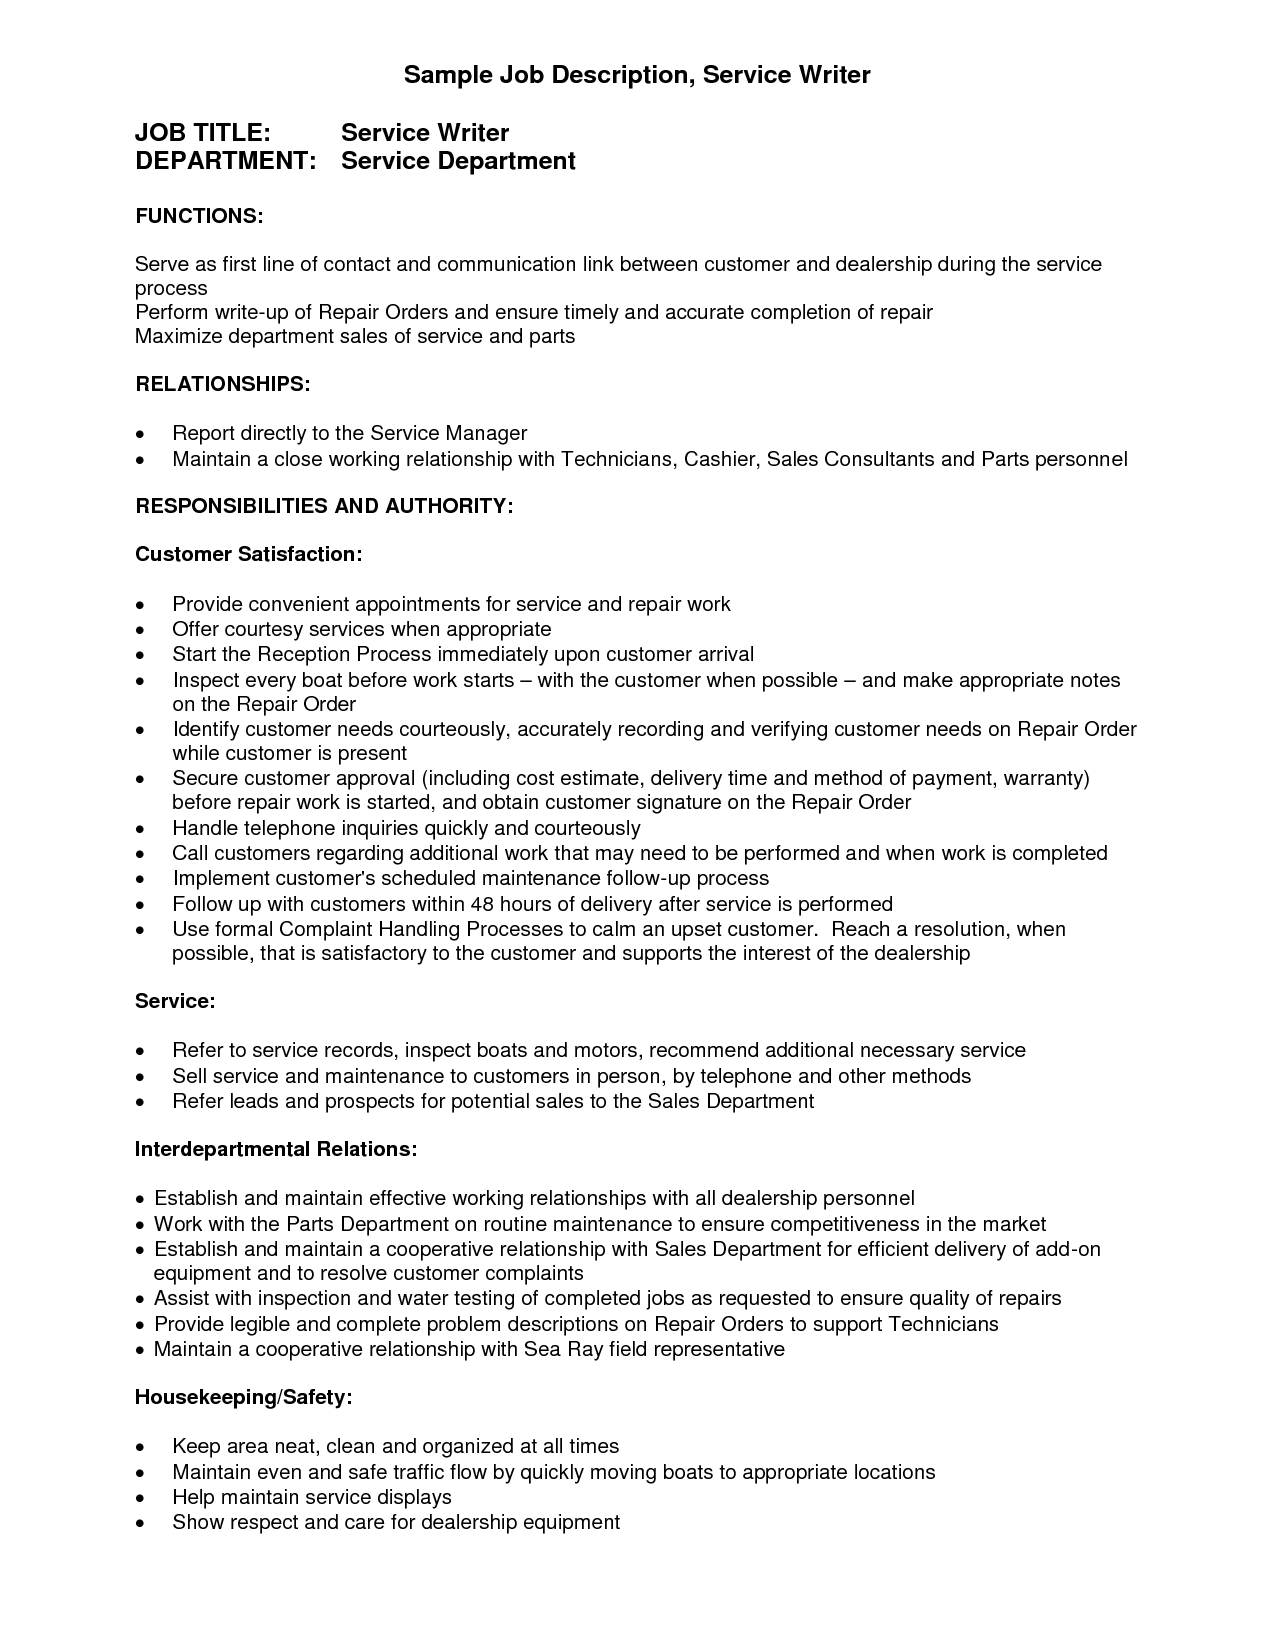 Security Cover Letter Template - Resume Writing Service Best Templatewriting A Resume Cover Letter